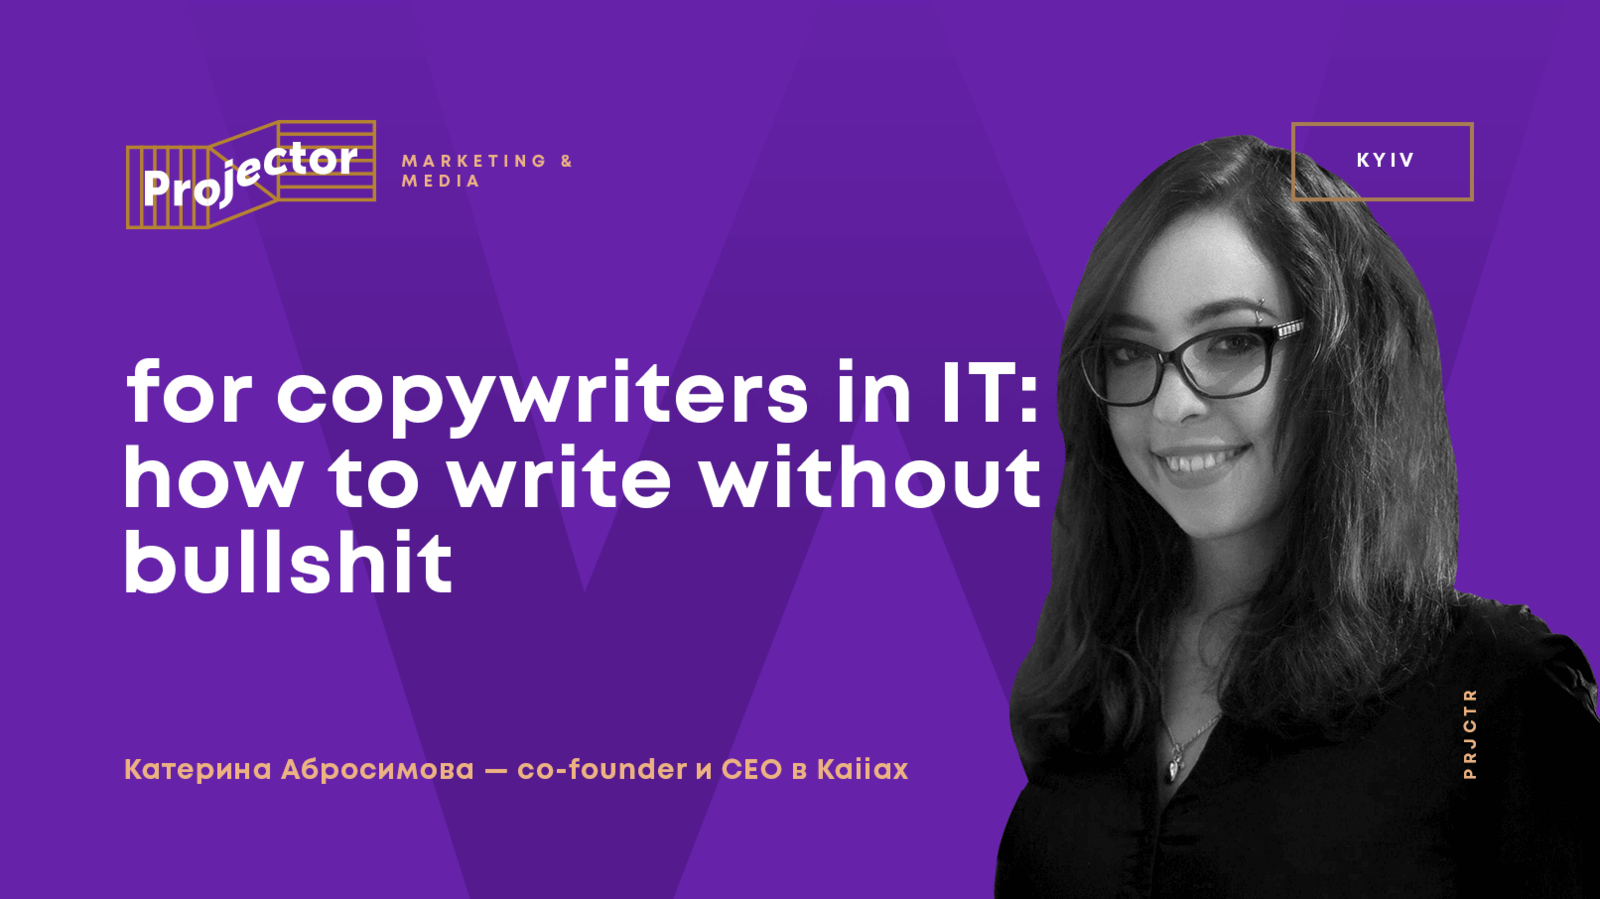 For copywriters in IT: How to write without bullshit for tech companies